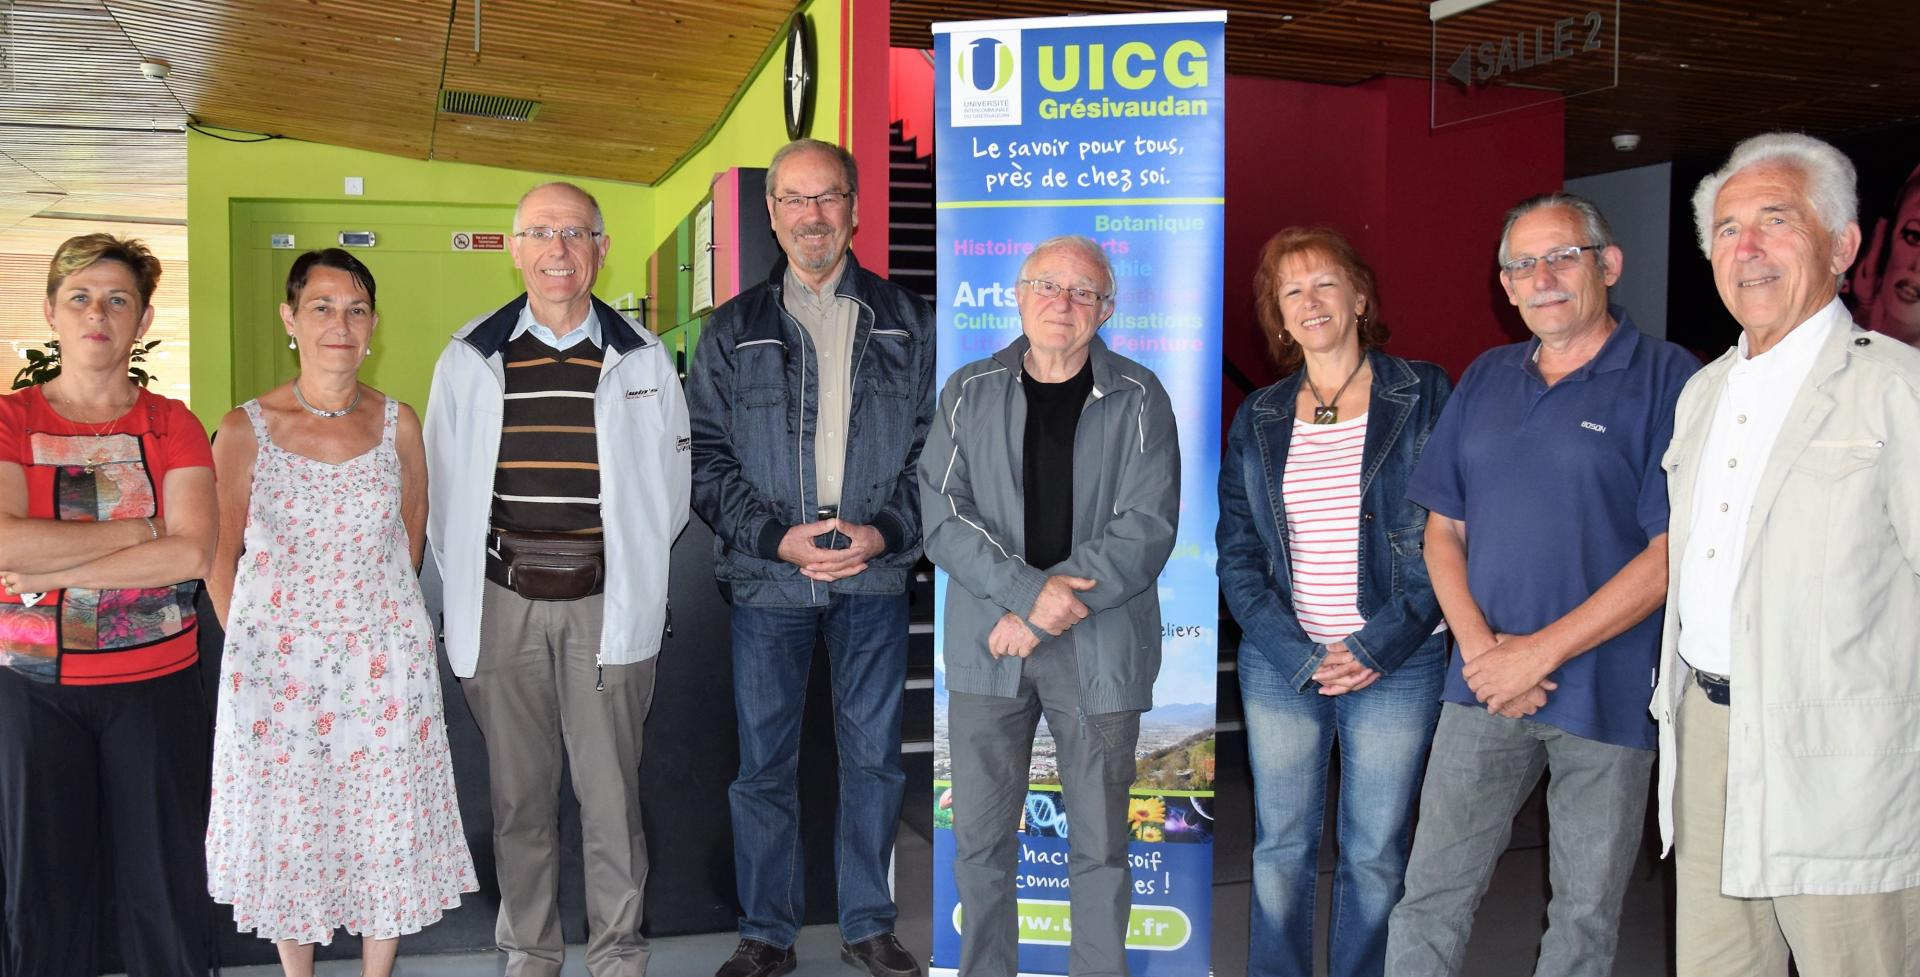 Uicg nouvelle presidence 2017